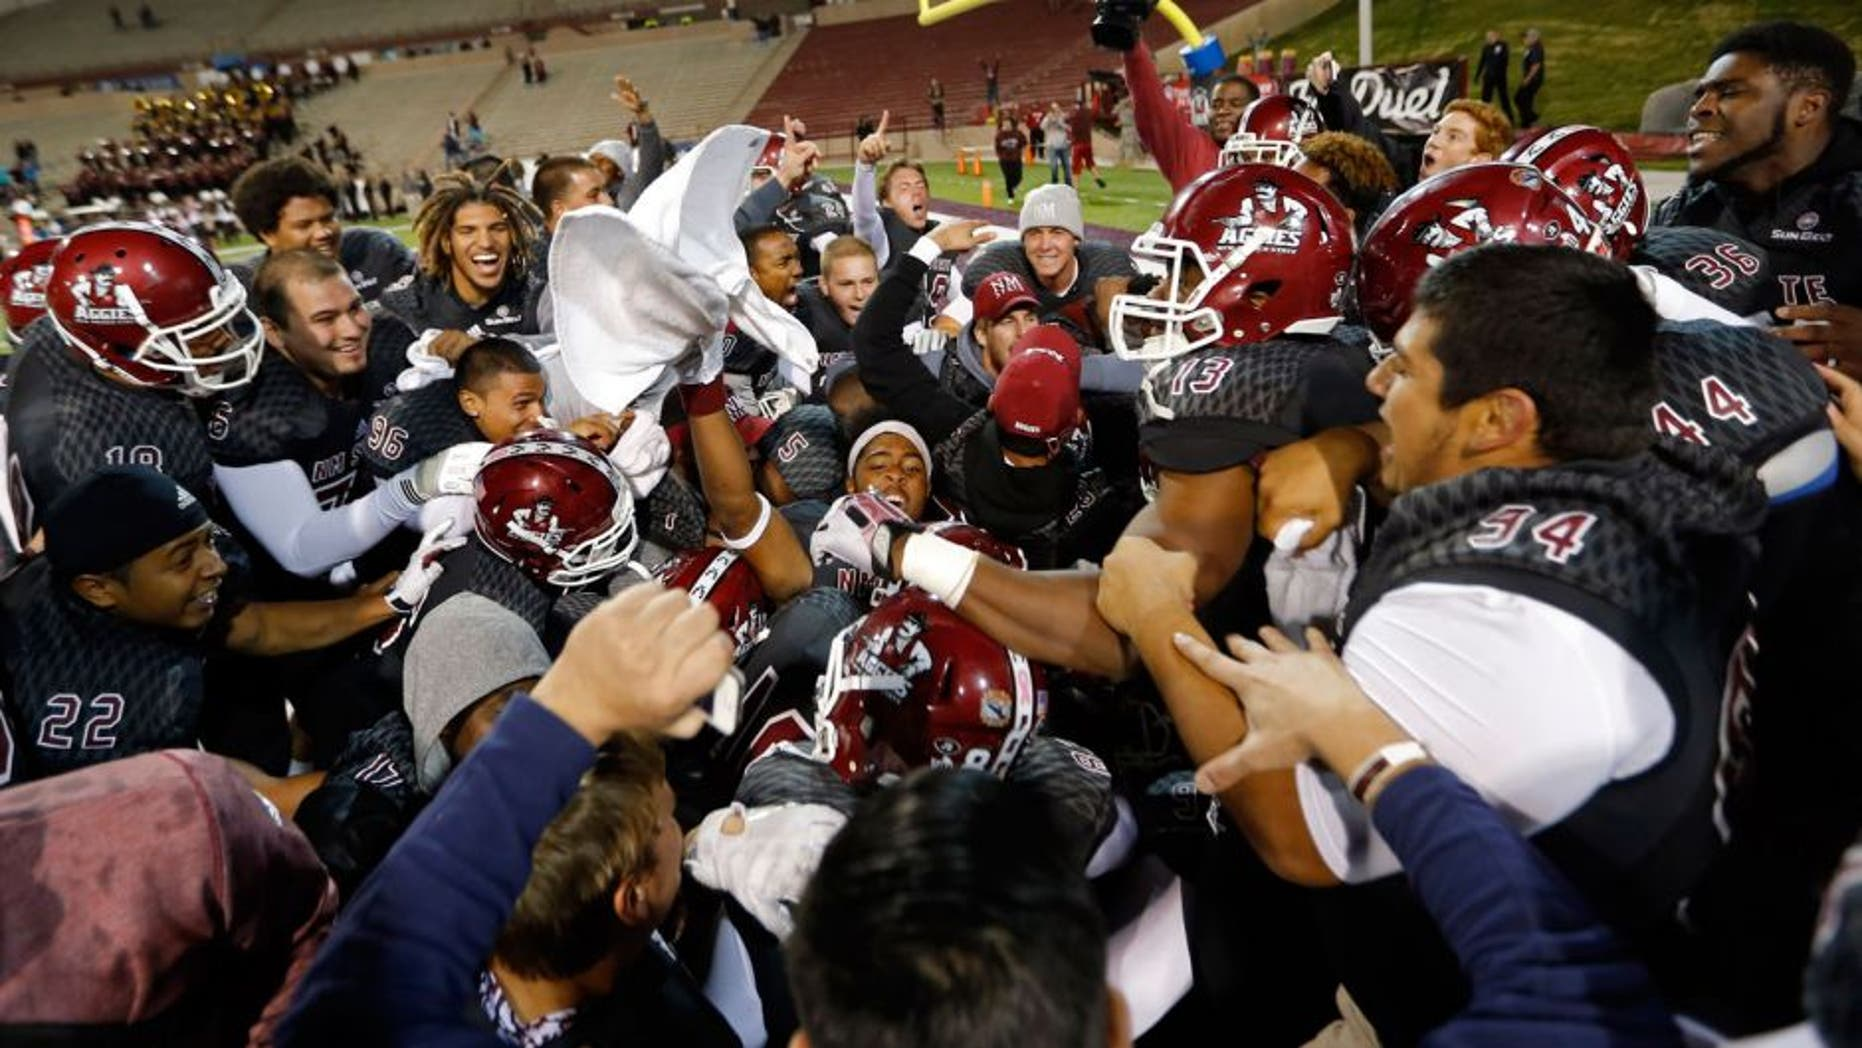 The New Mexico State team celebrate after defensive back Terrill Hanks intercepted a pass from Idaho quarterback Matt Linehan to win 55-48 in overtime their NCAA college football game in Las Cruces, N.M., Saturday, Oct. 31, 2015. (AP Photo/Andres Leighton)